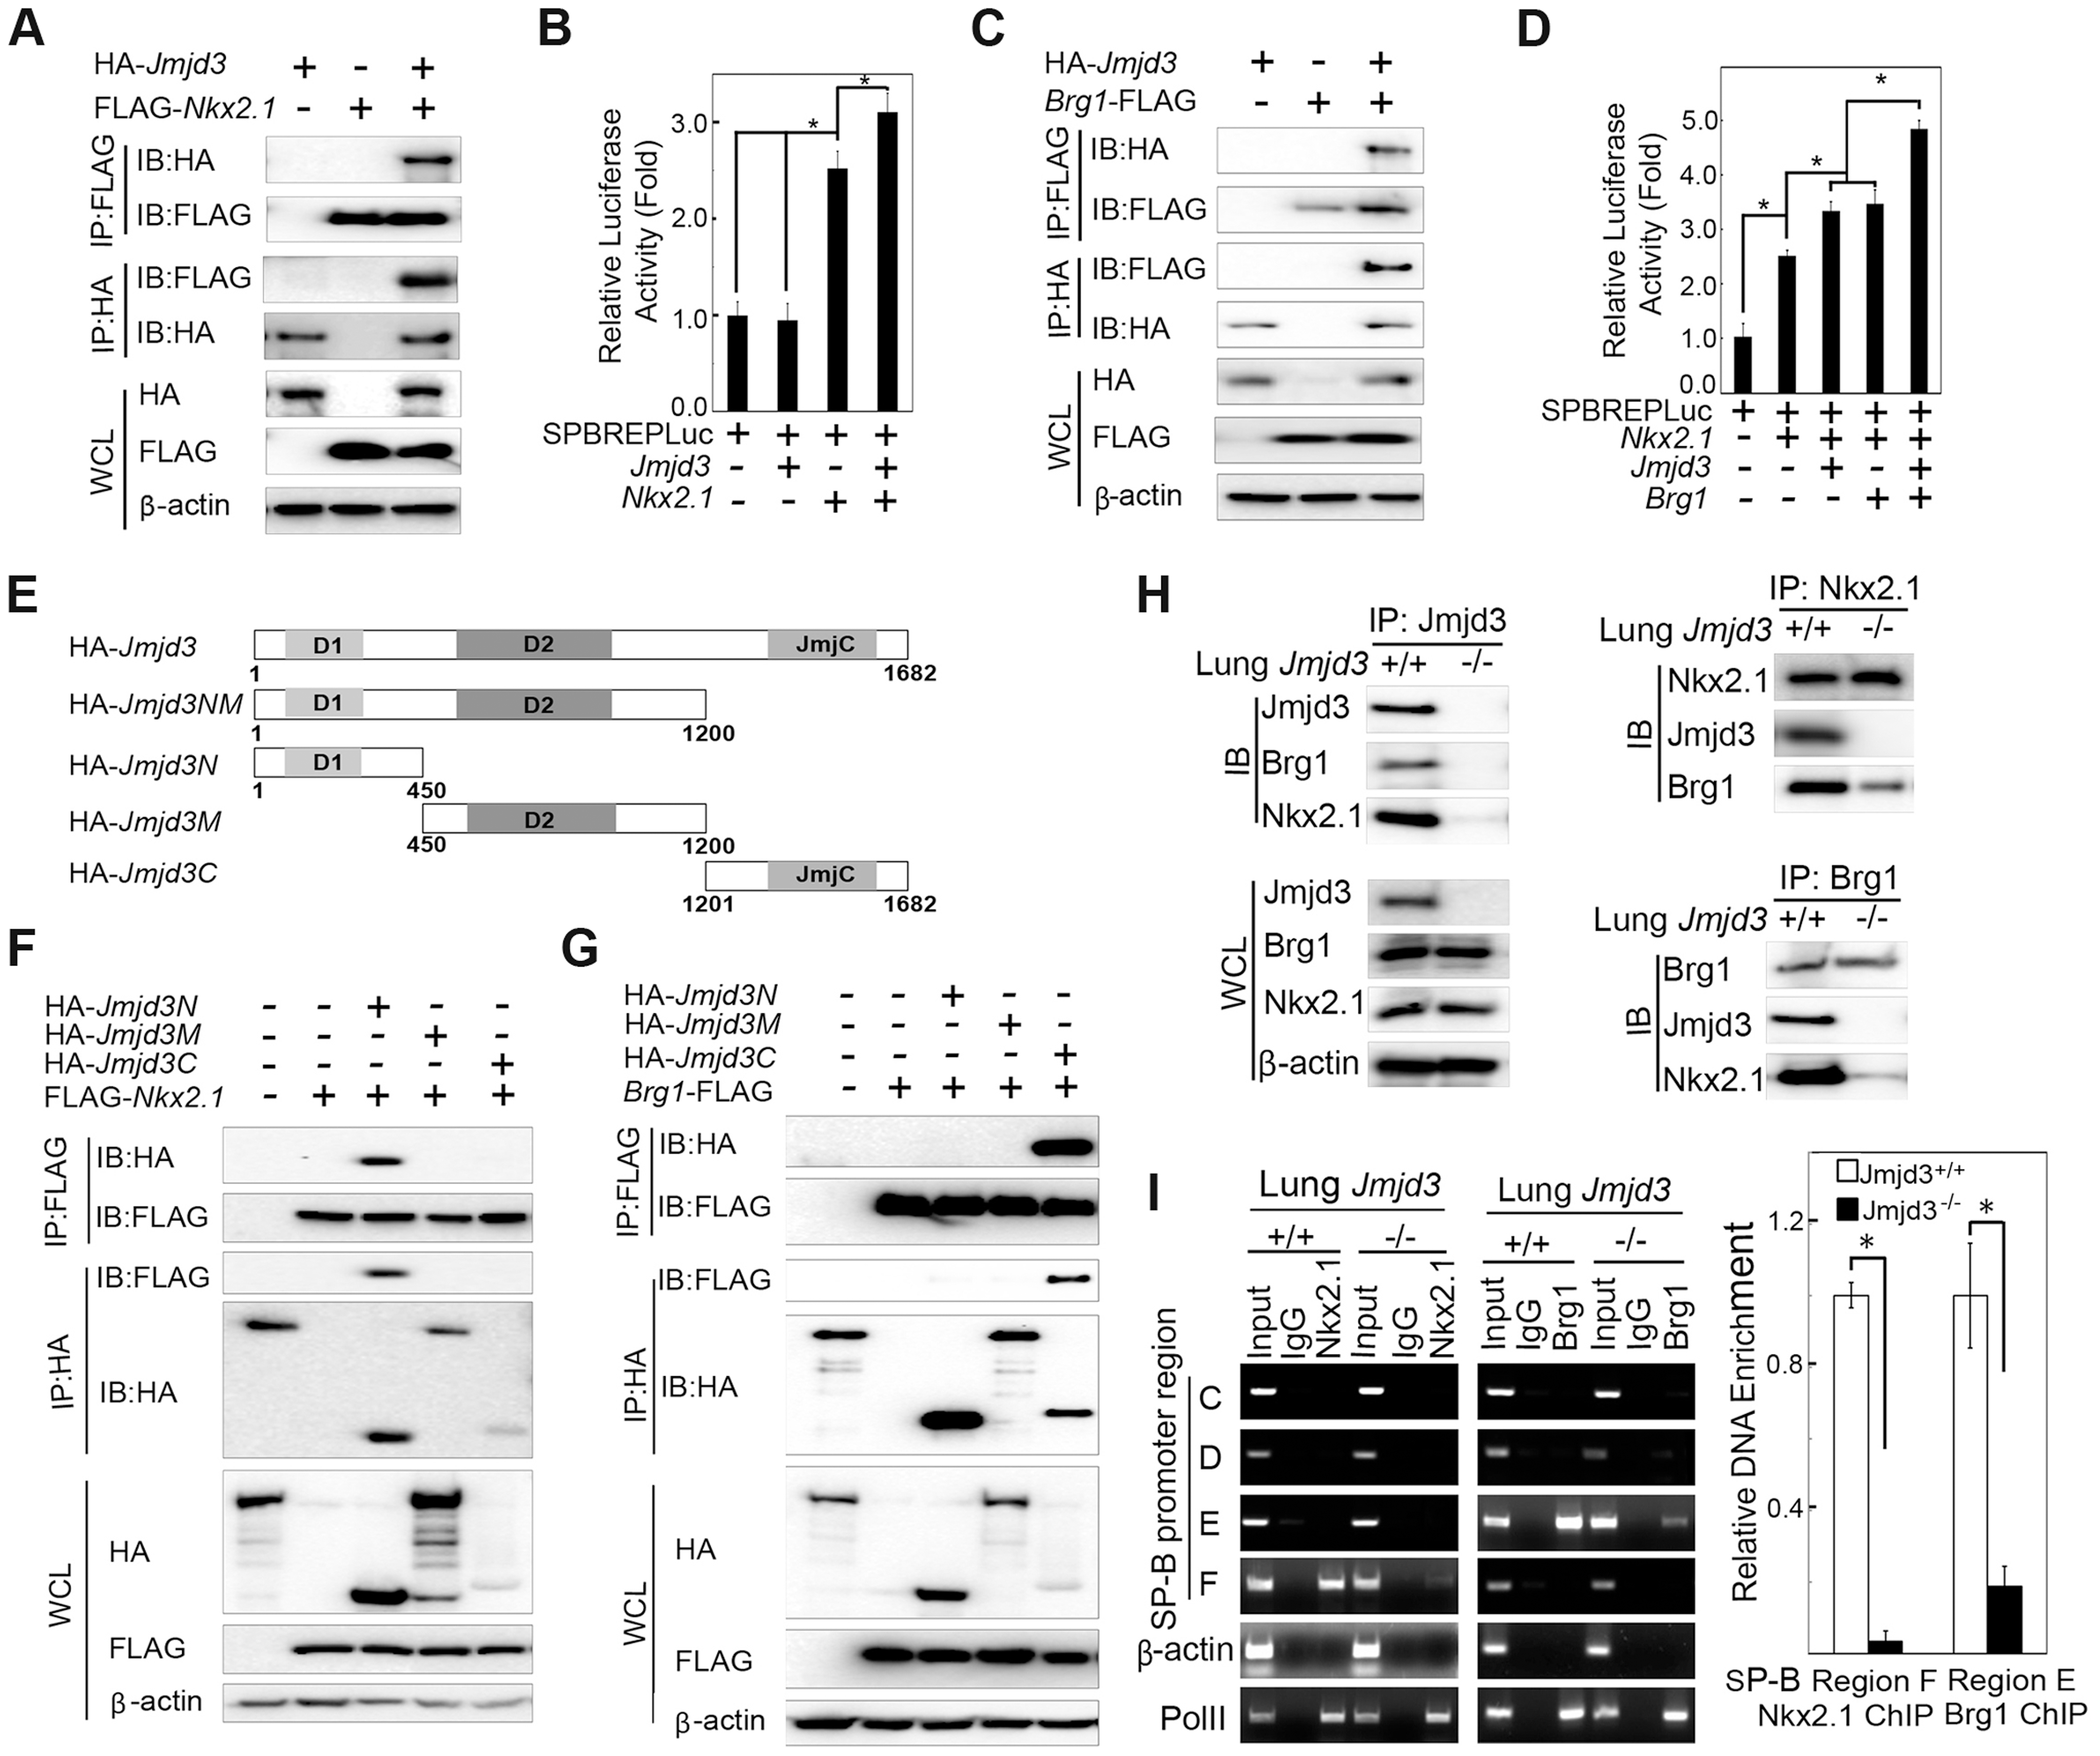 Jmjd3 coregulates <i>SP-B</i> expression with Nkx2.1 and Brg1.